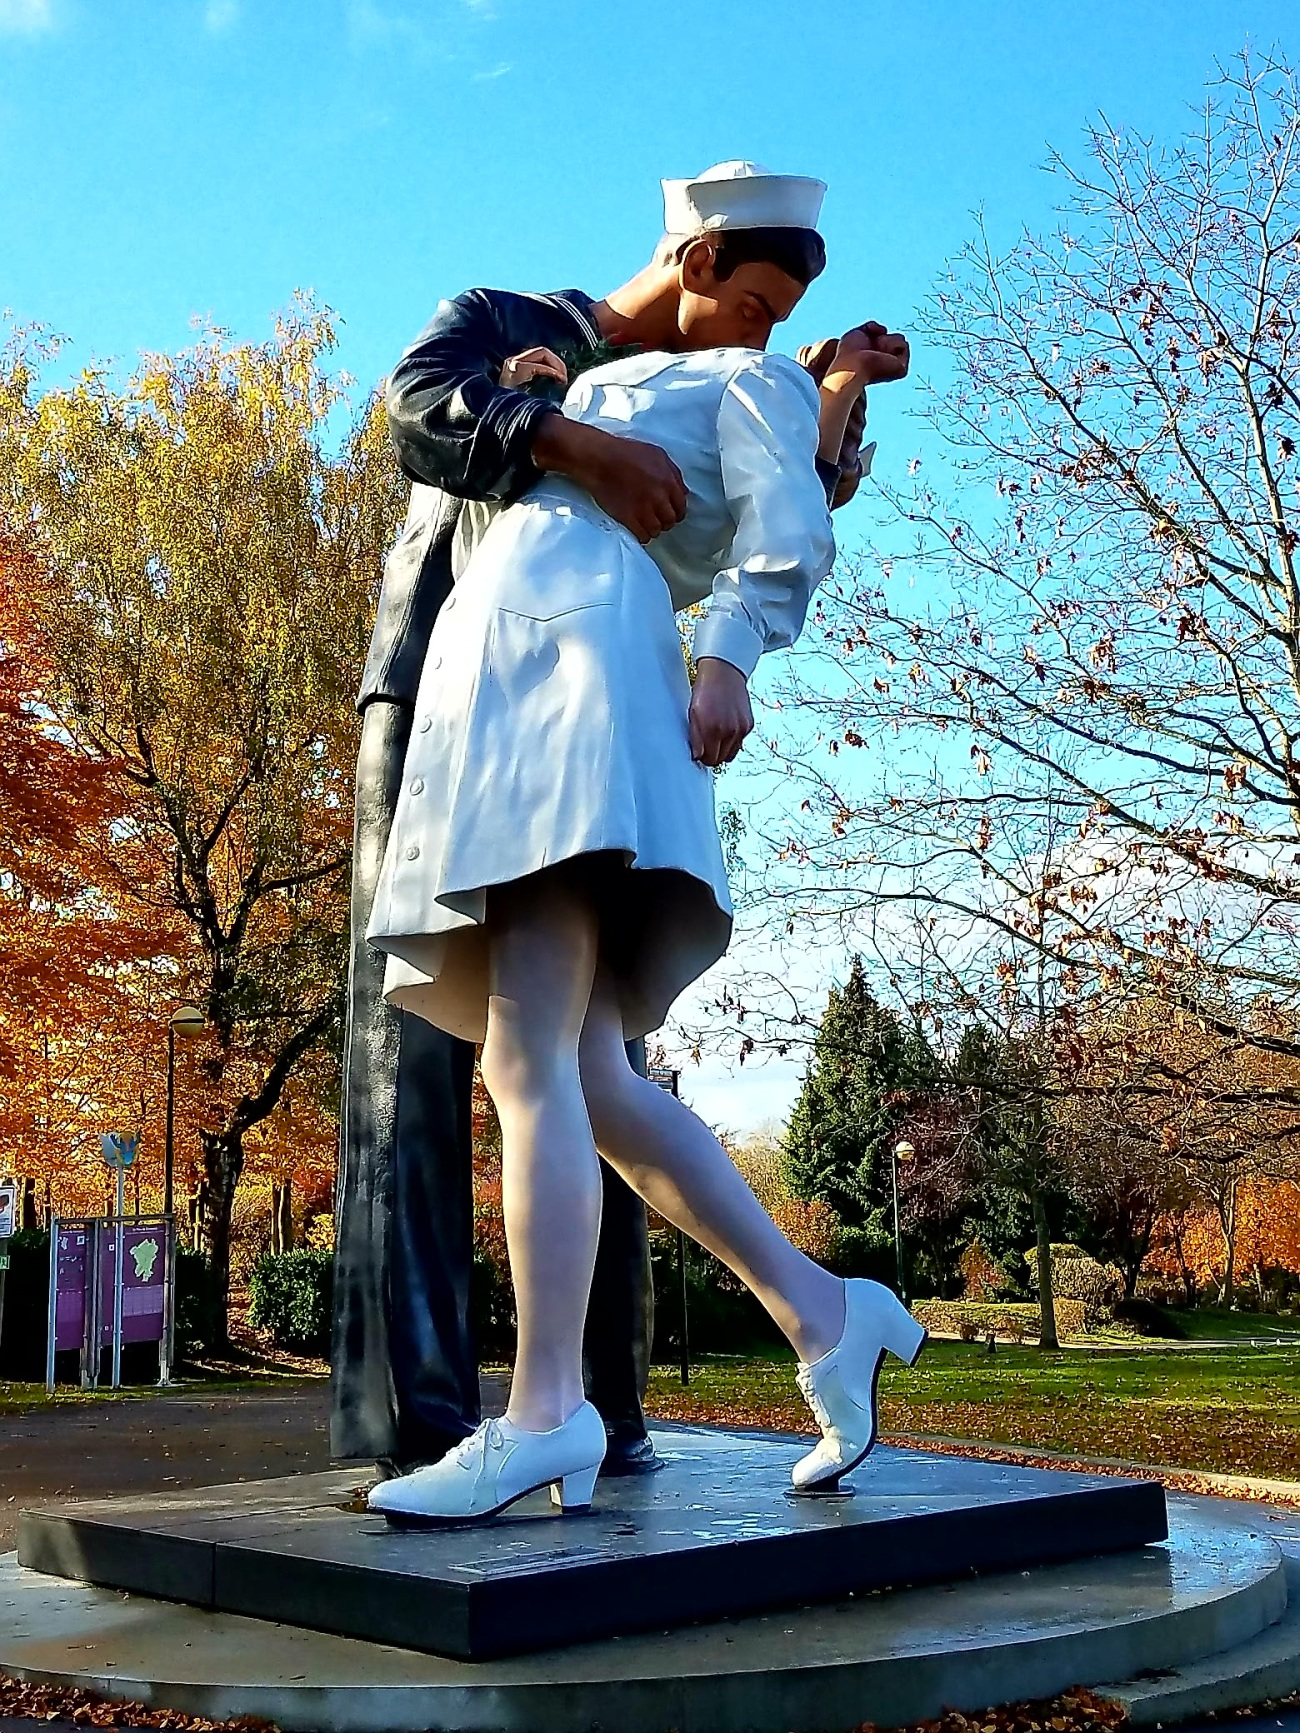 The iconic statue of the VJ Day kiss